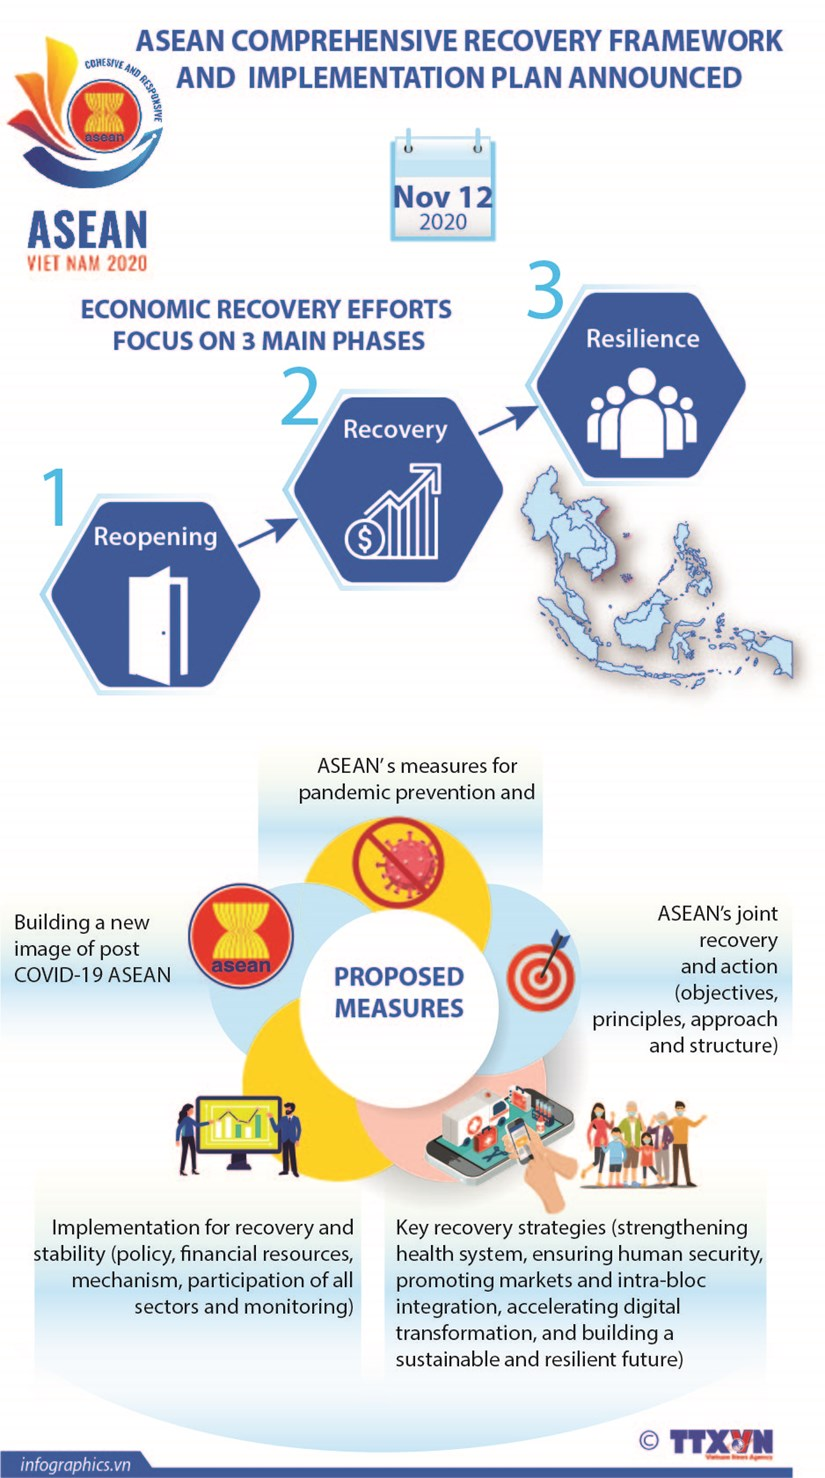 ASEAN comprehensive recovery framework and implementation plan announced hinh anh 1